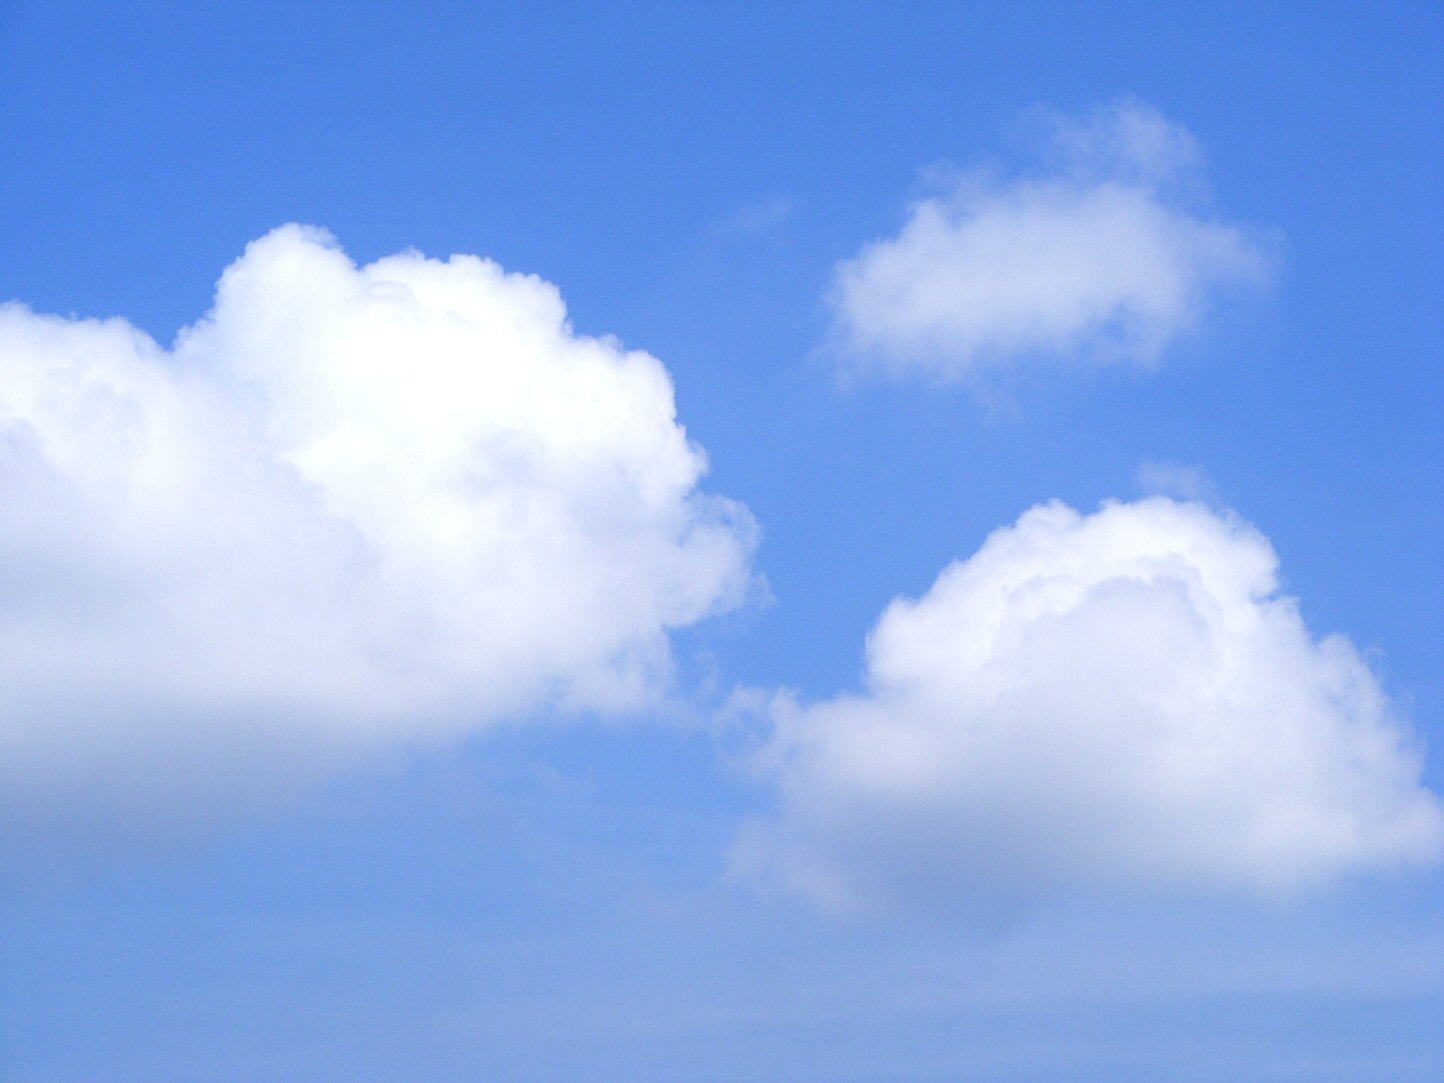 Perfect Blue Sky with Cumulonimbus Clouds